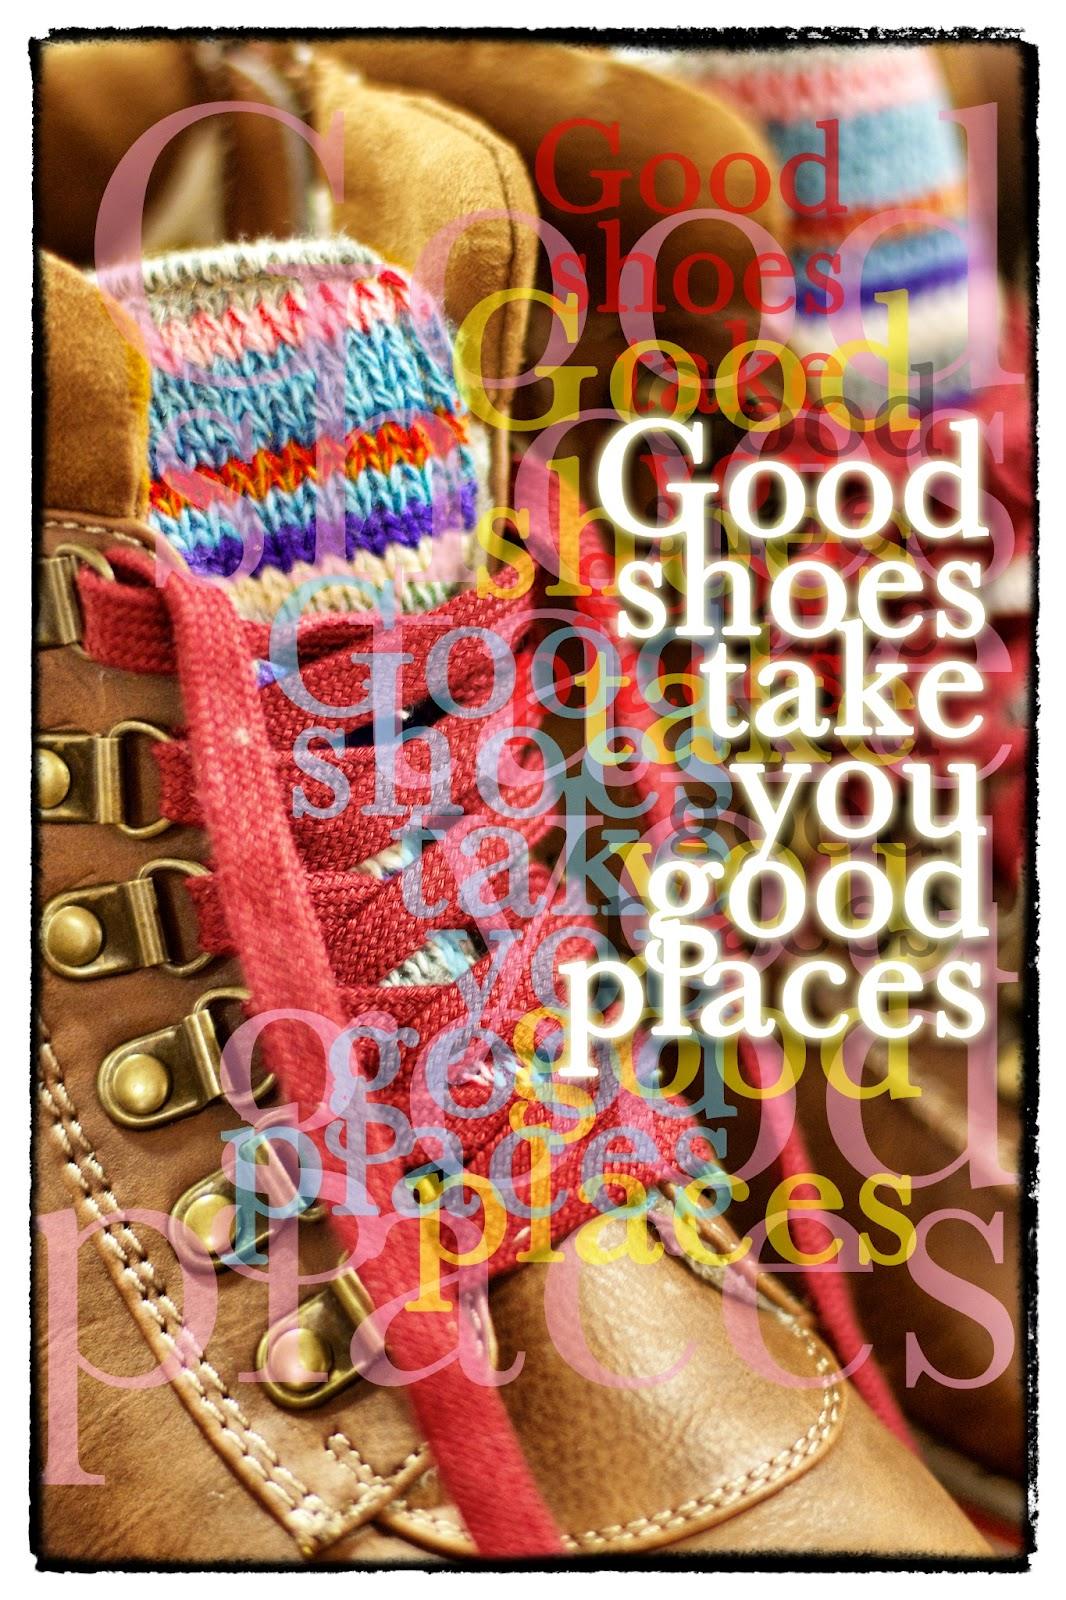 http://3.bp.blogspot.com/-Cg4uMGZ2JZk/UGSXpaUDEjI/AAAAAAAAC1g/0FZre2F3Zg0/s1600/Good+shoes+take+you+good+places.jpg